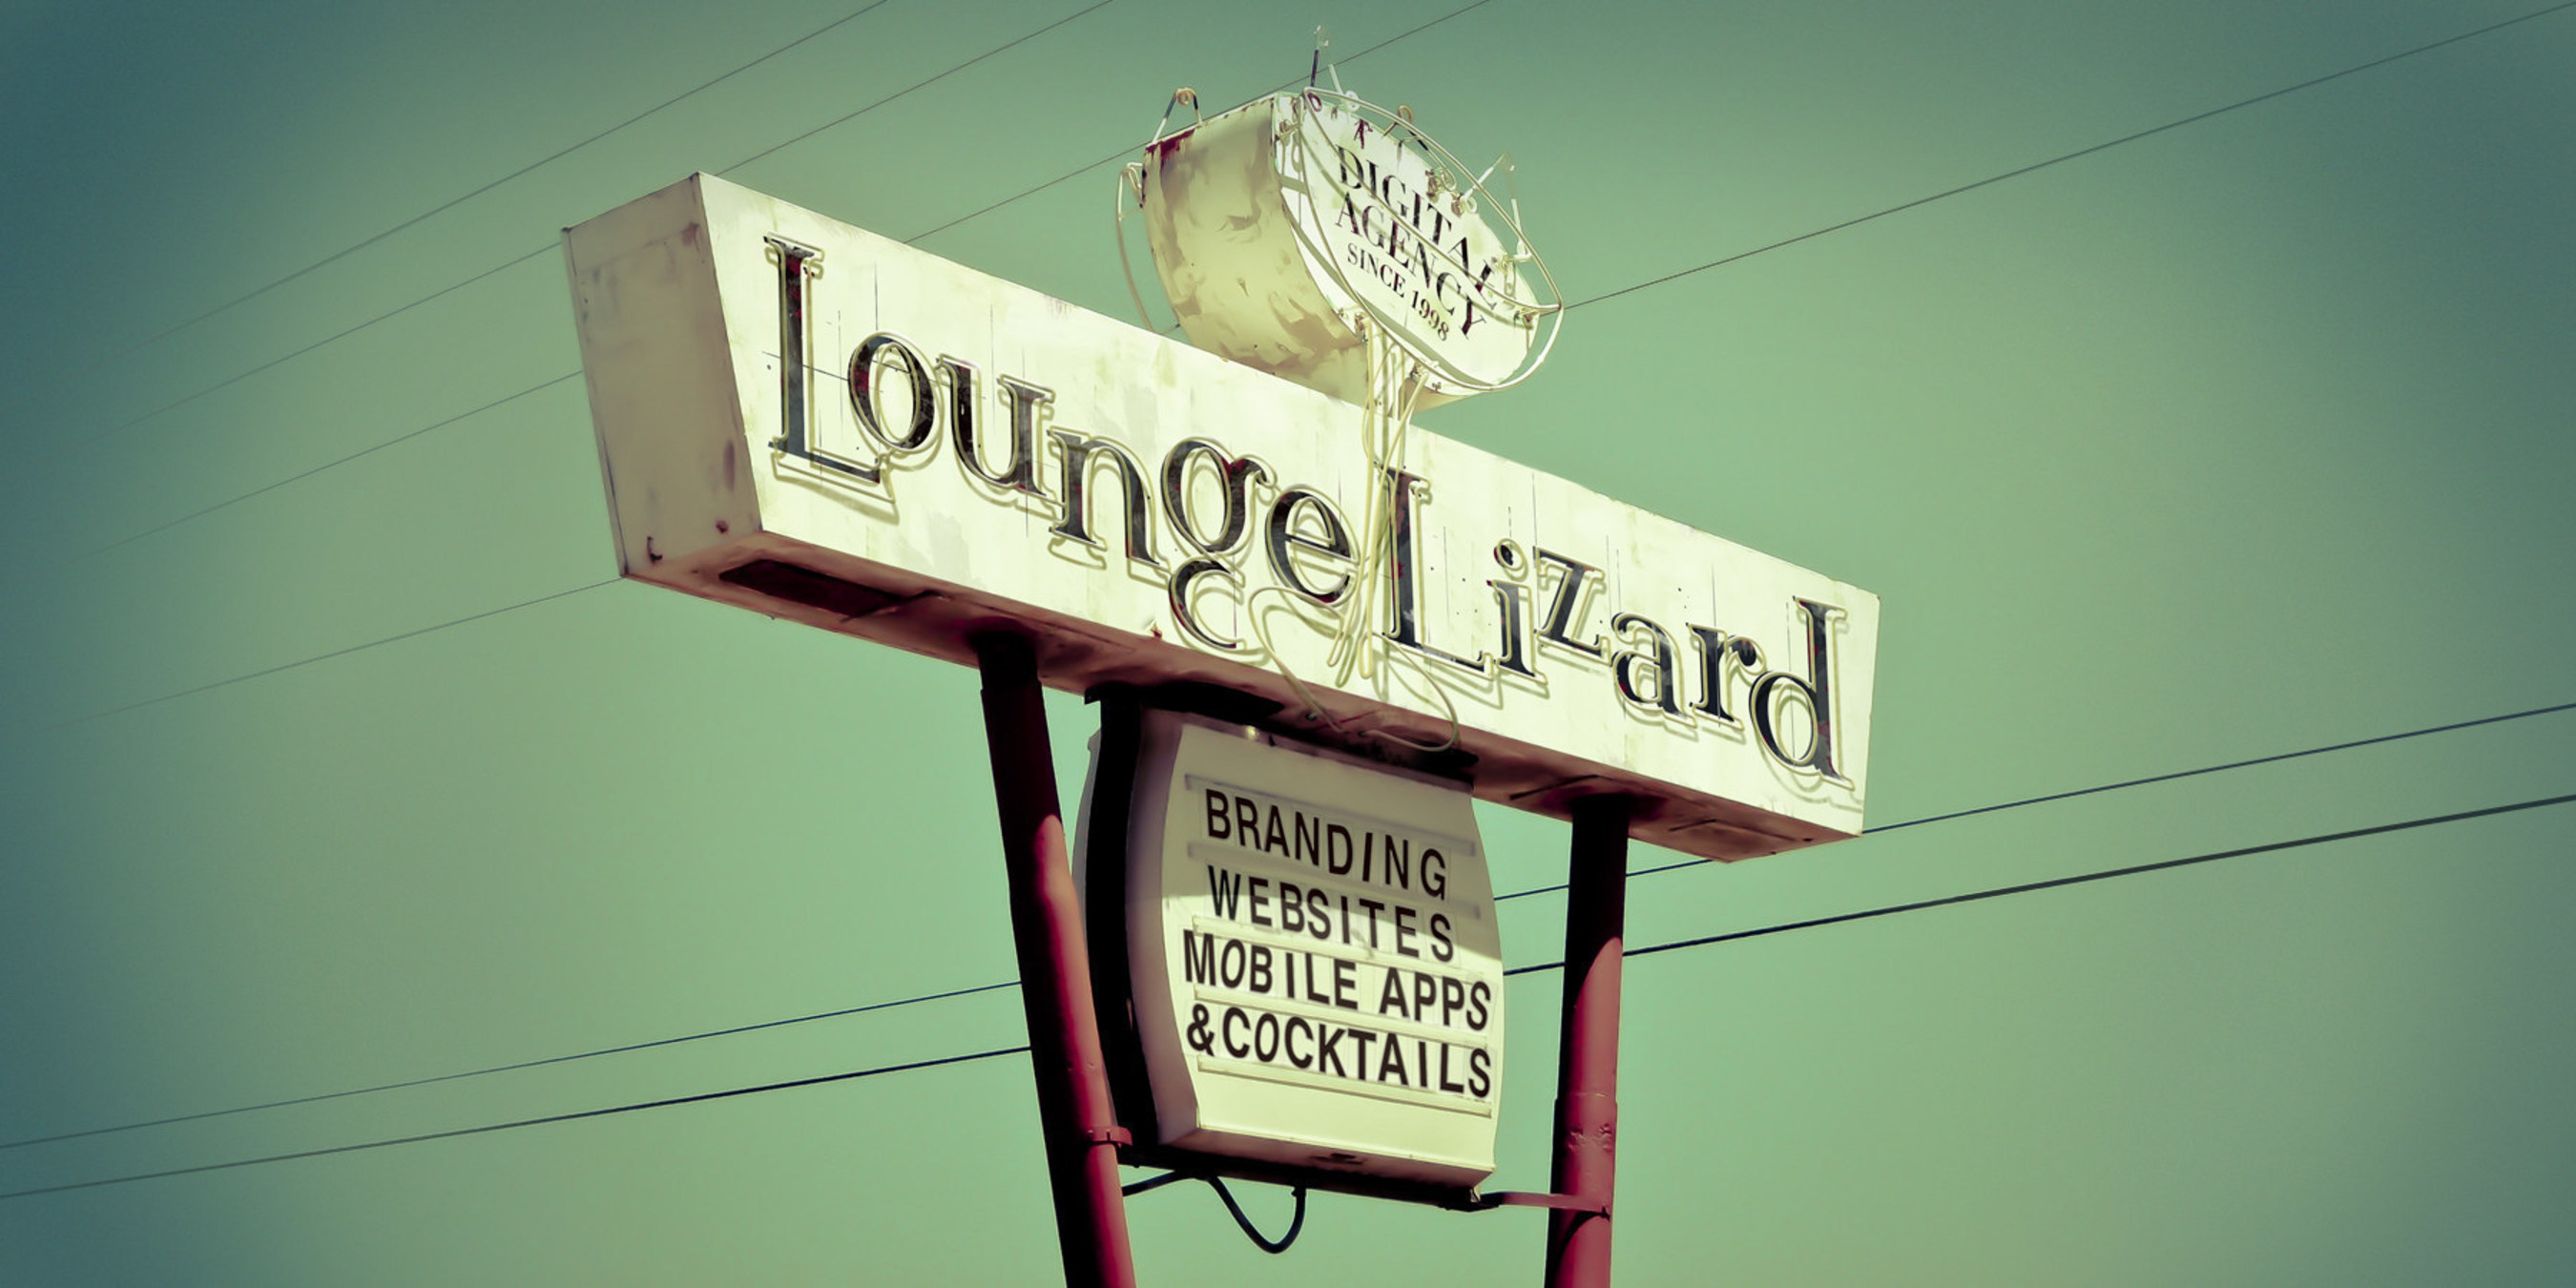 Lounge Lizard Shares 5 Best Practices for Mobile App Design